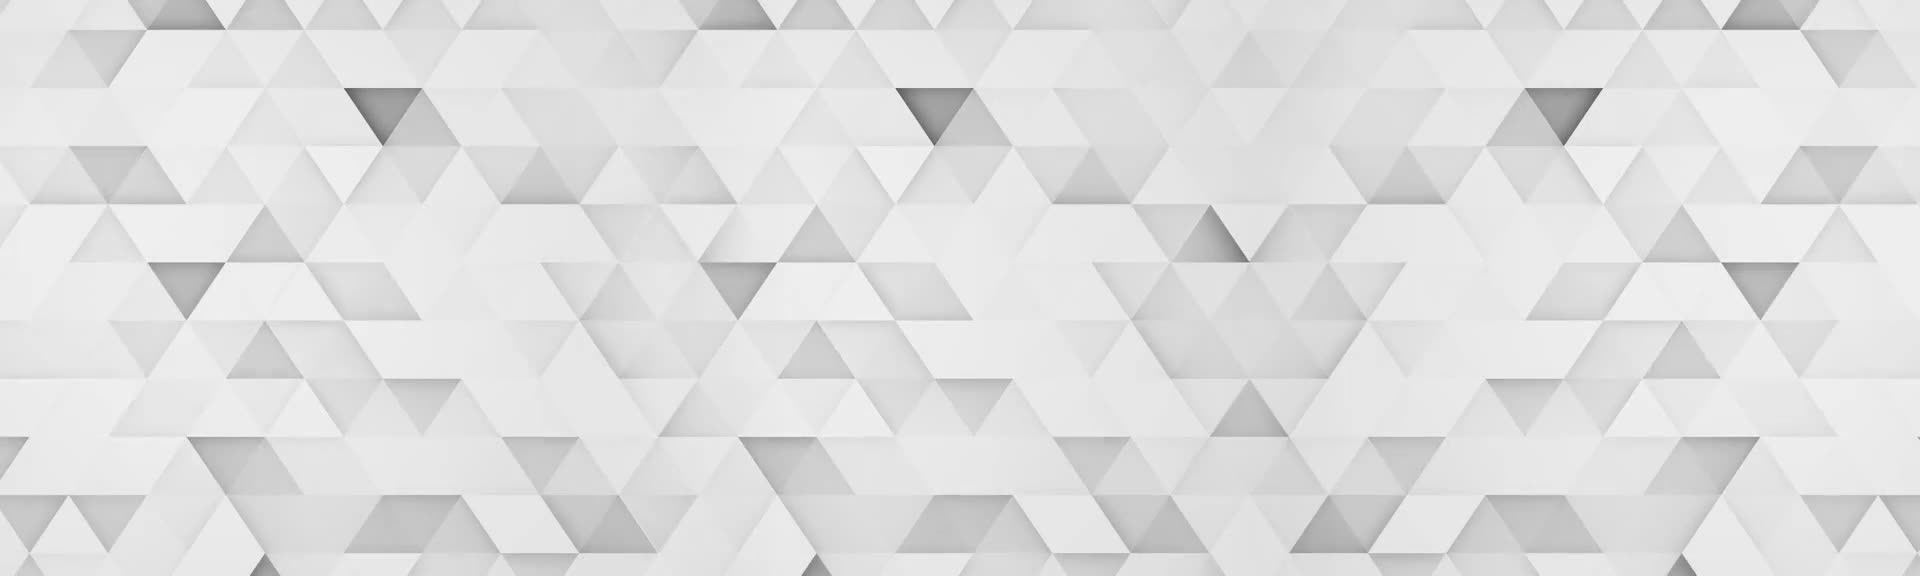 Triangles background pattern abstract grey